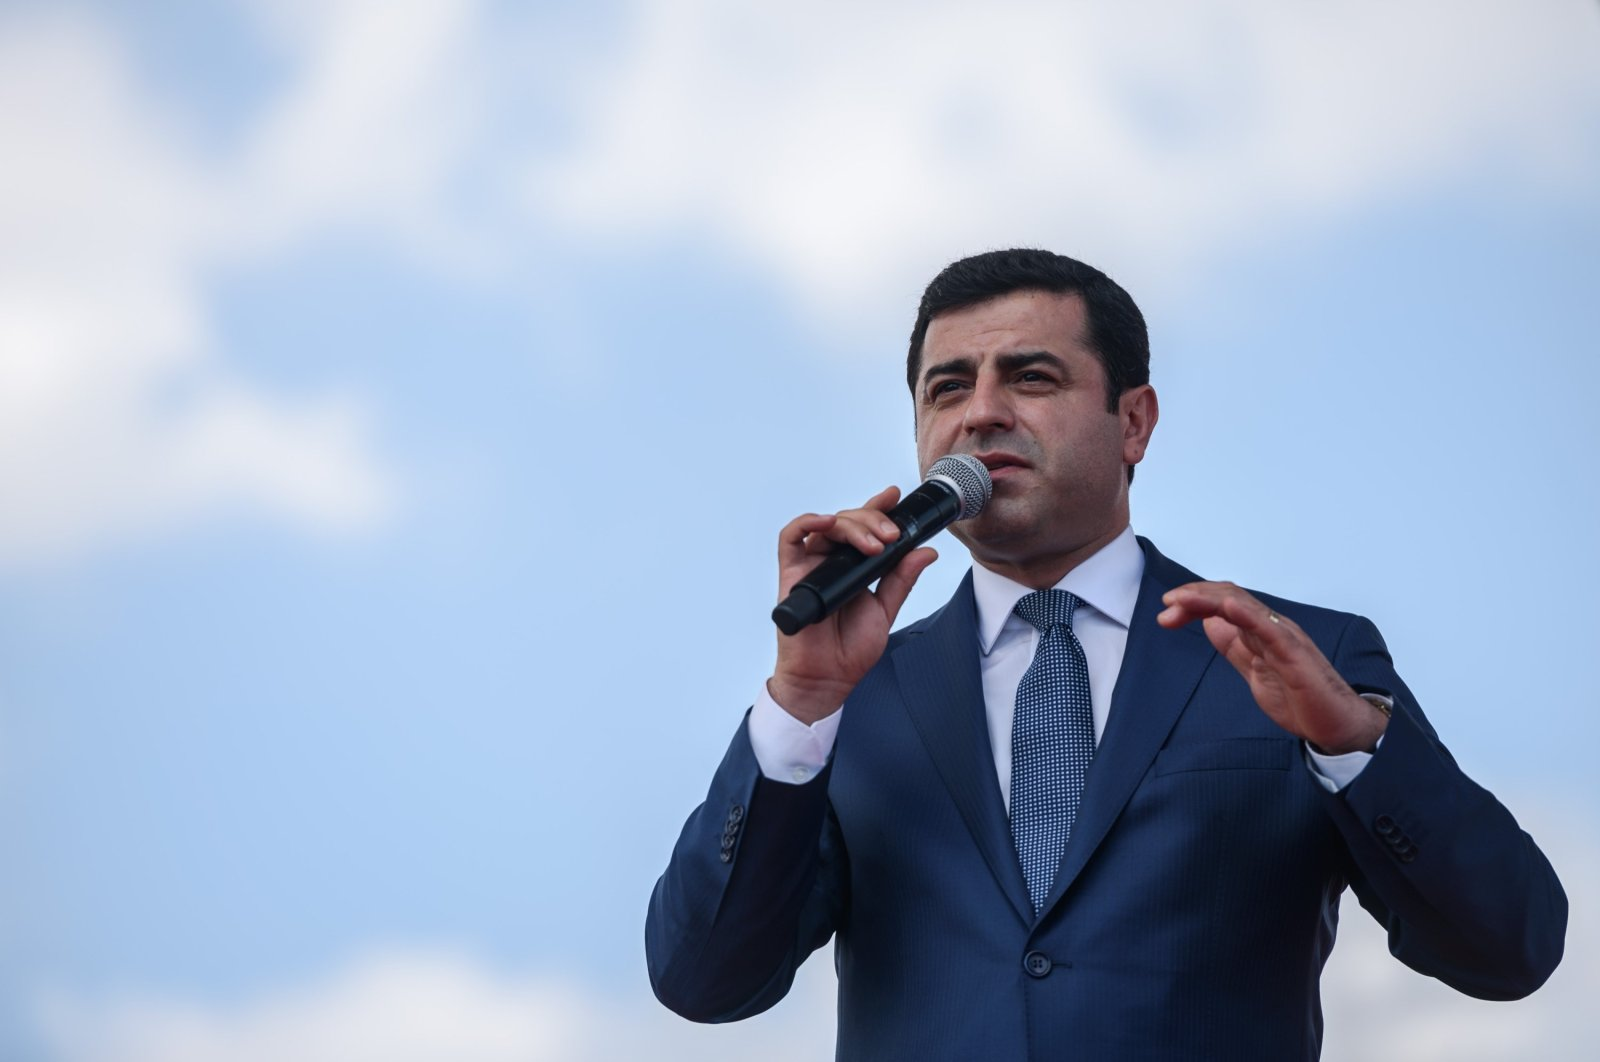 In this file photo, the then-co-chair of the pro-PKK HDP Selahattin Demirtaş delivers a speech in Istanbul during a rally on lawmakers' immunity, Istanbul, Turkey, June 5, 2016. (AFP Photo)